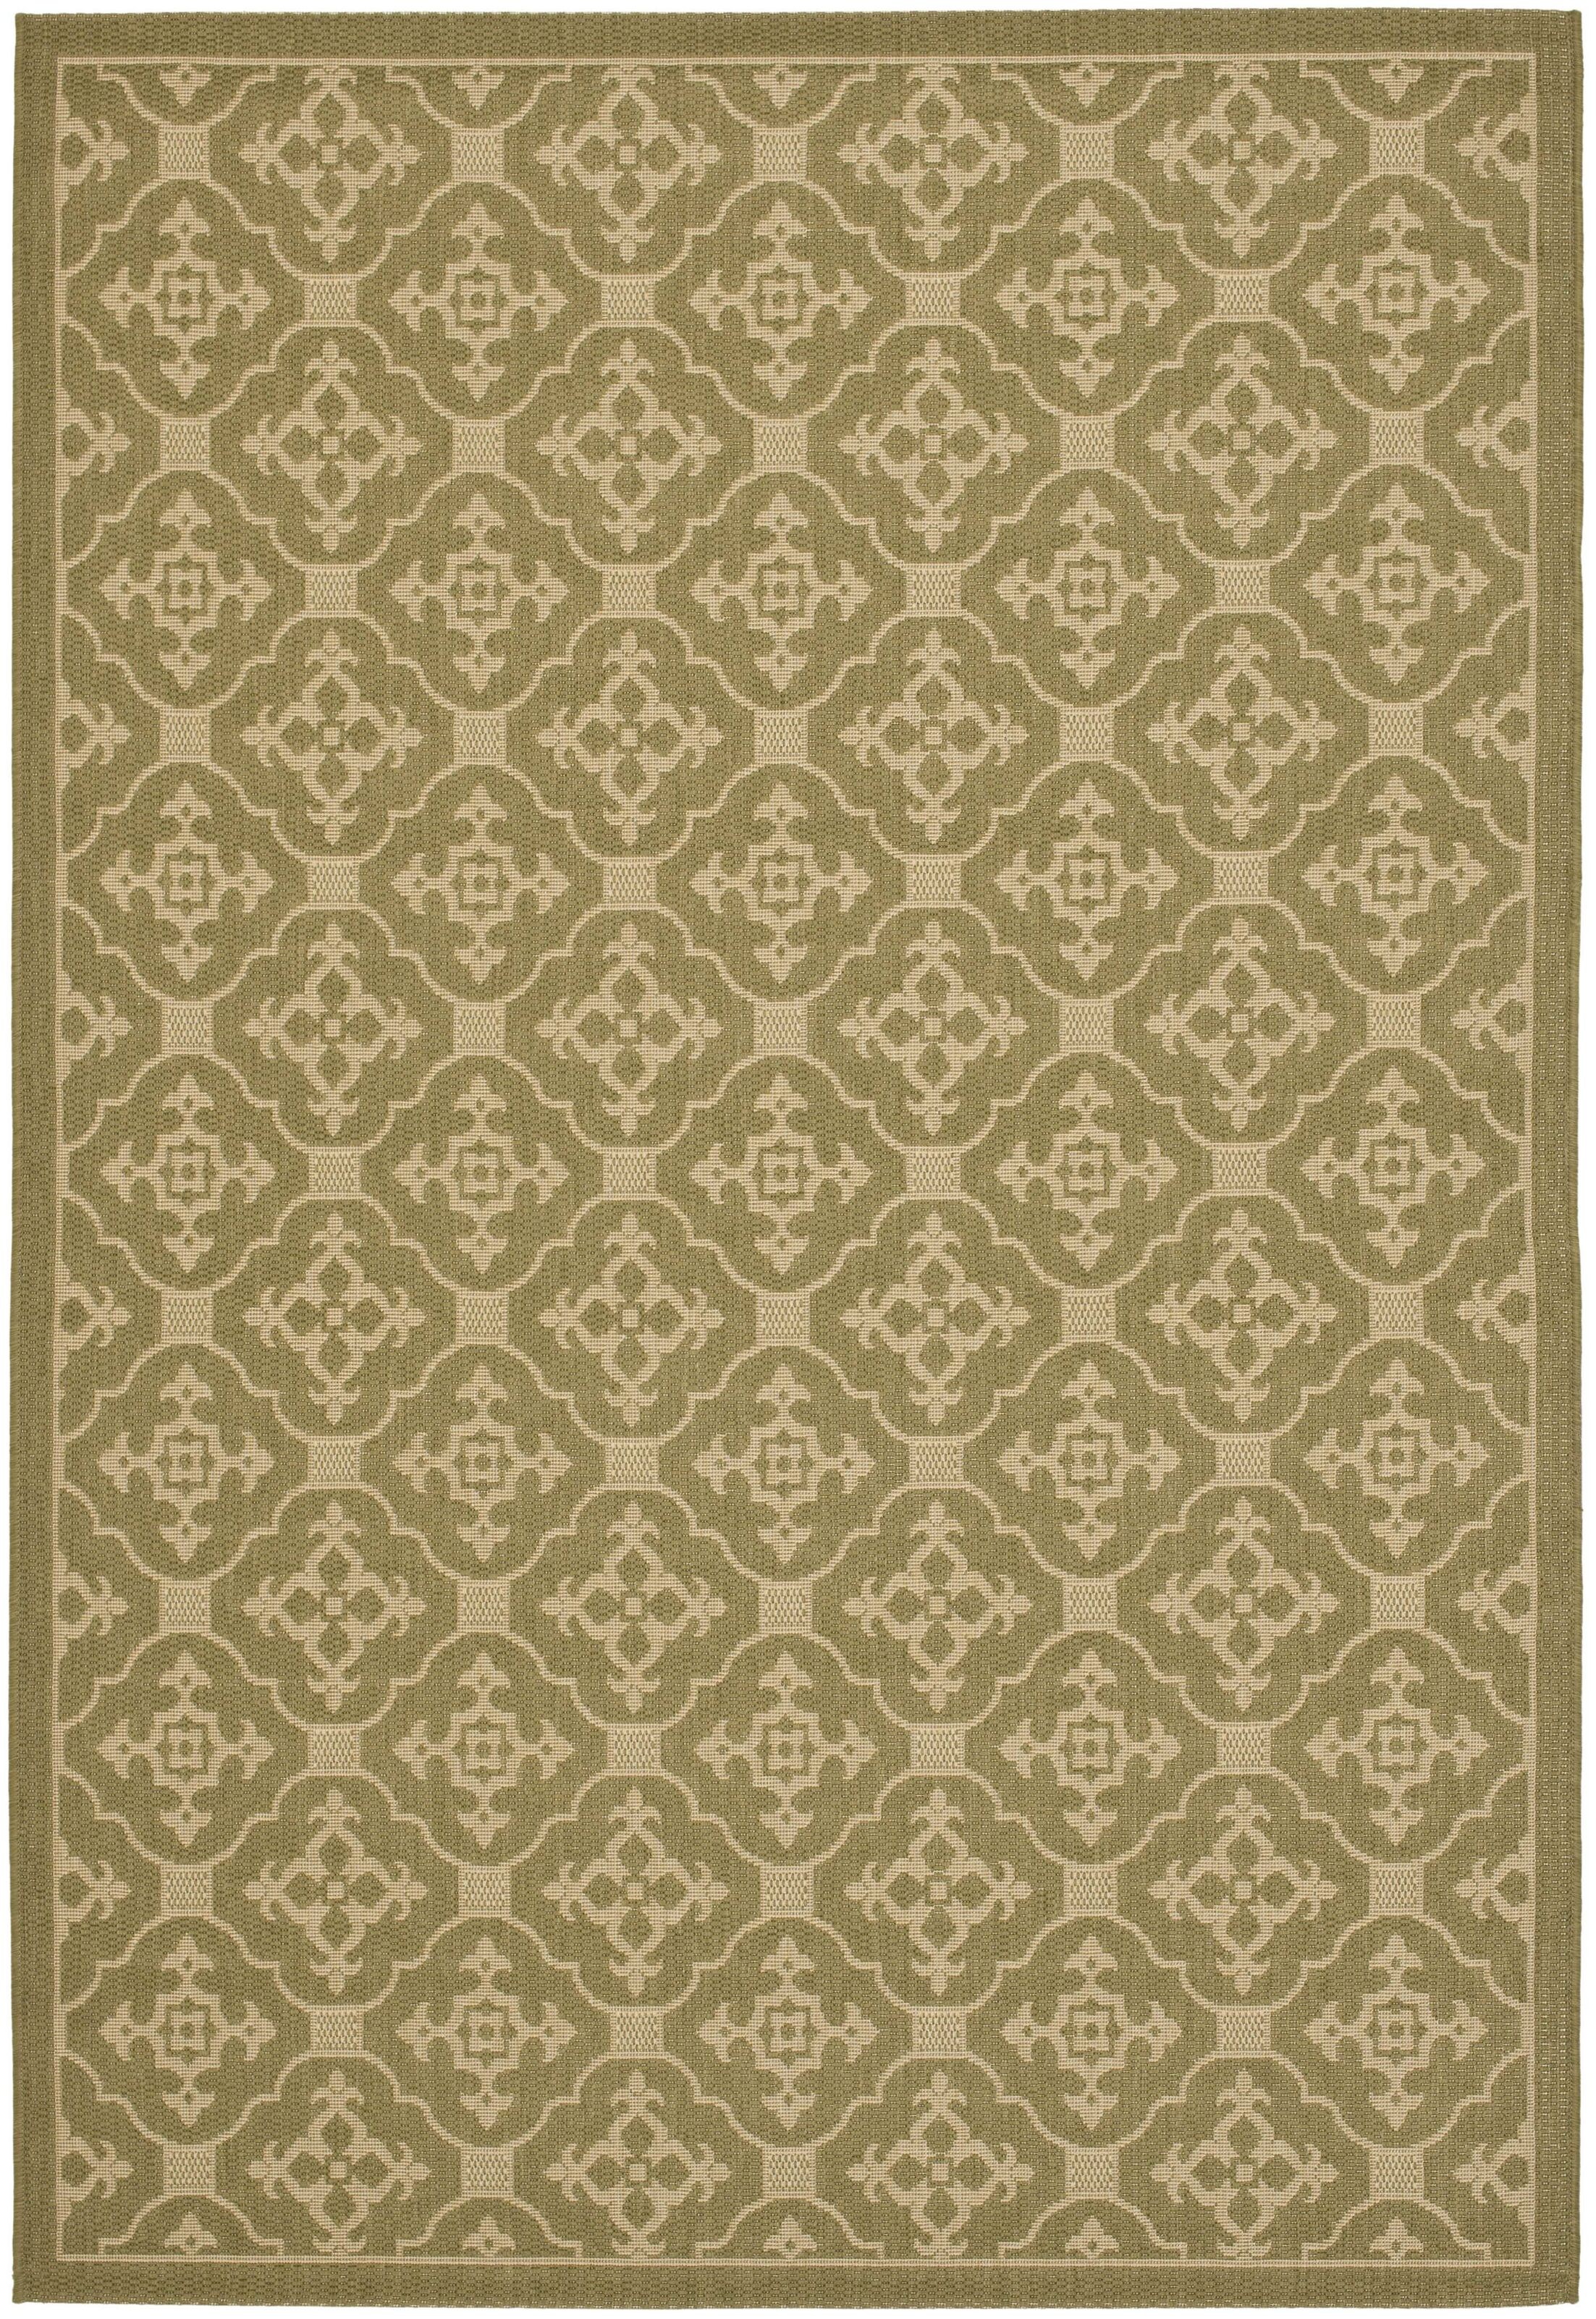 Short Olive / Creme Outdoor Area Rug Rug Size: Rectangle 5'3